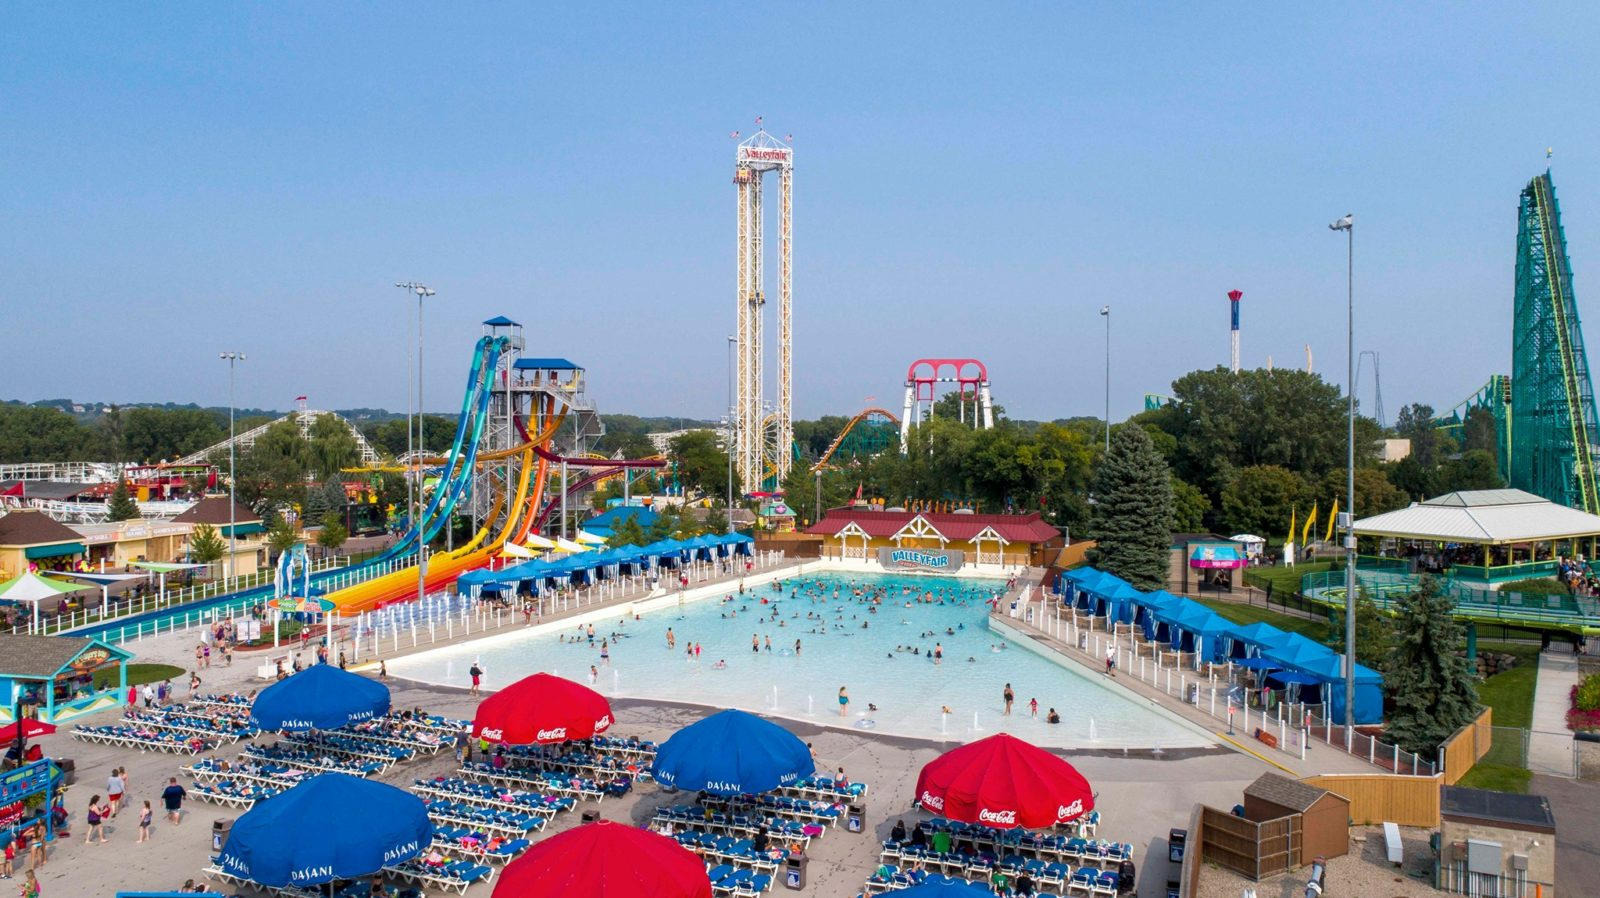 Soak City Opening Weekend